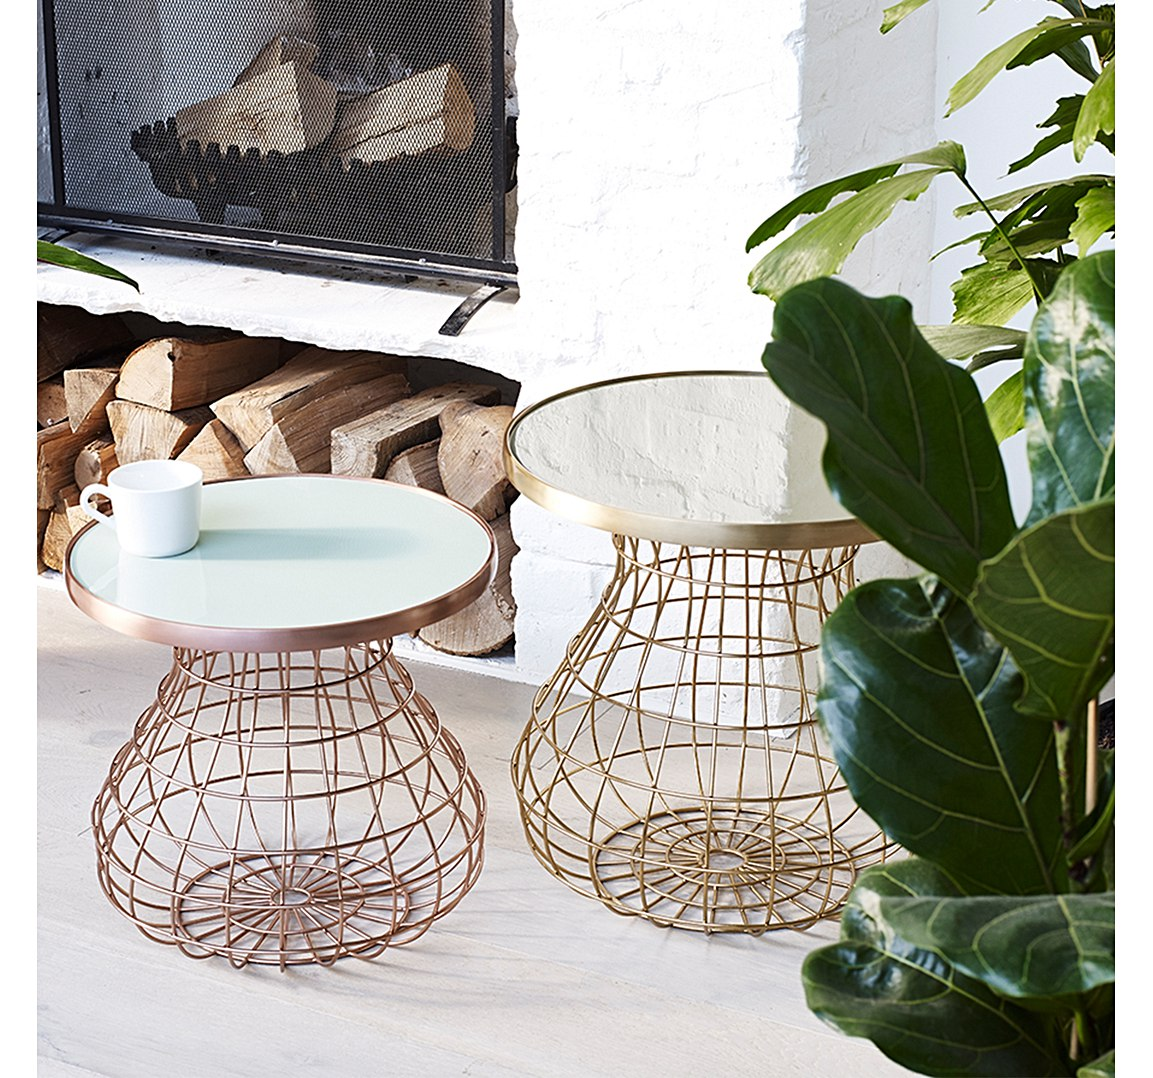 1160406_oliver-bonas_homeware_unity-small-duck-egg-and-copper-side-table_4.jpg